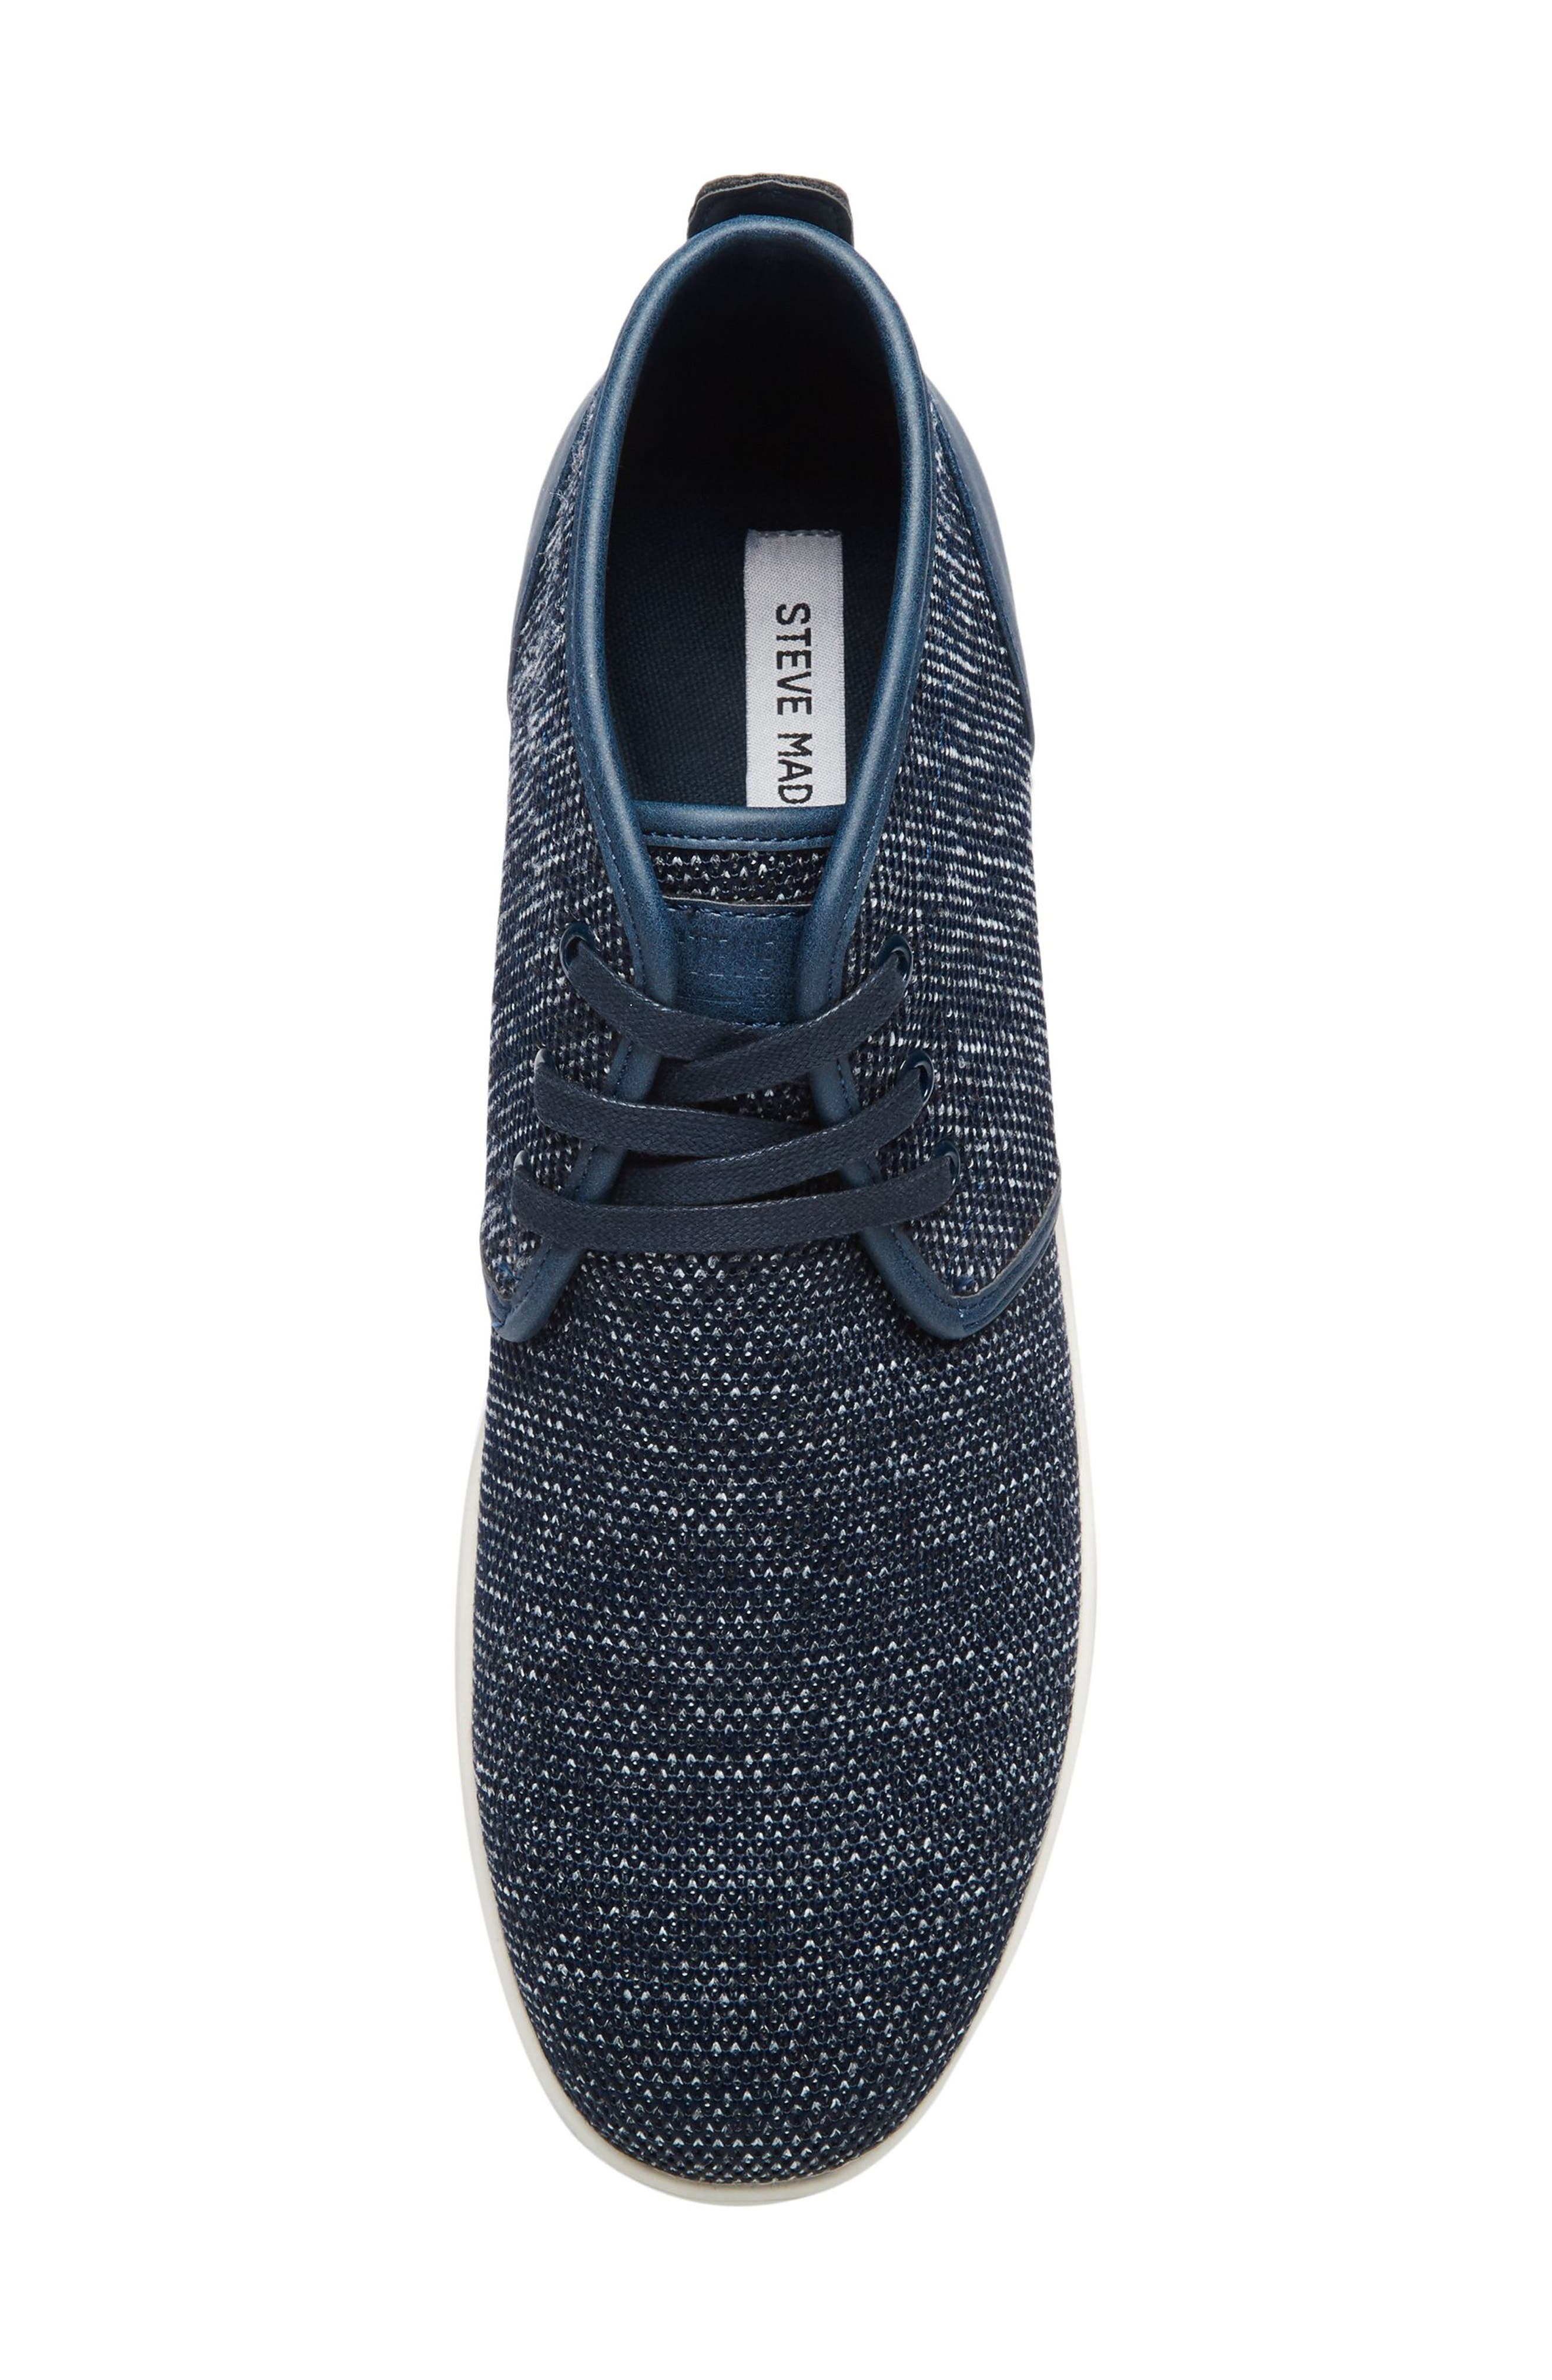 Fowler Knit Mid Top Sneaker,                             Alternate thumbnail 5, color,                             Navy Leather